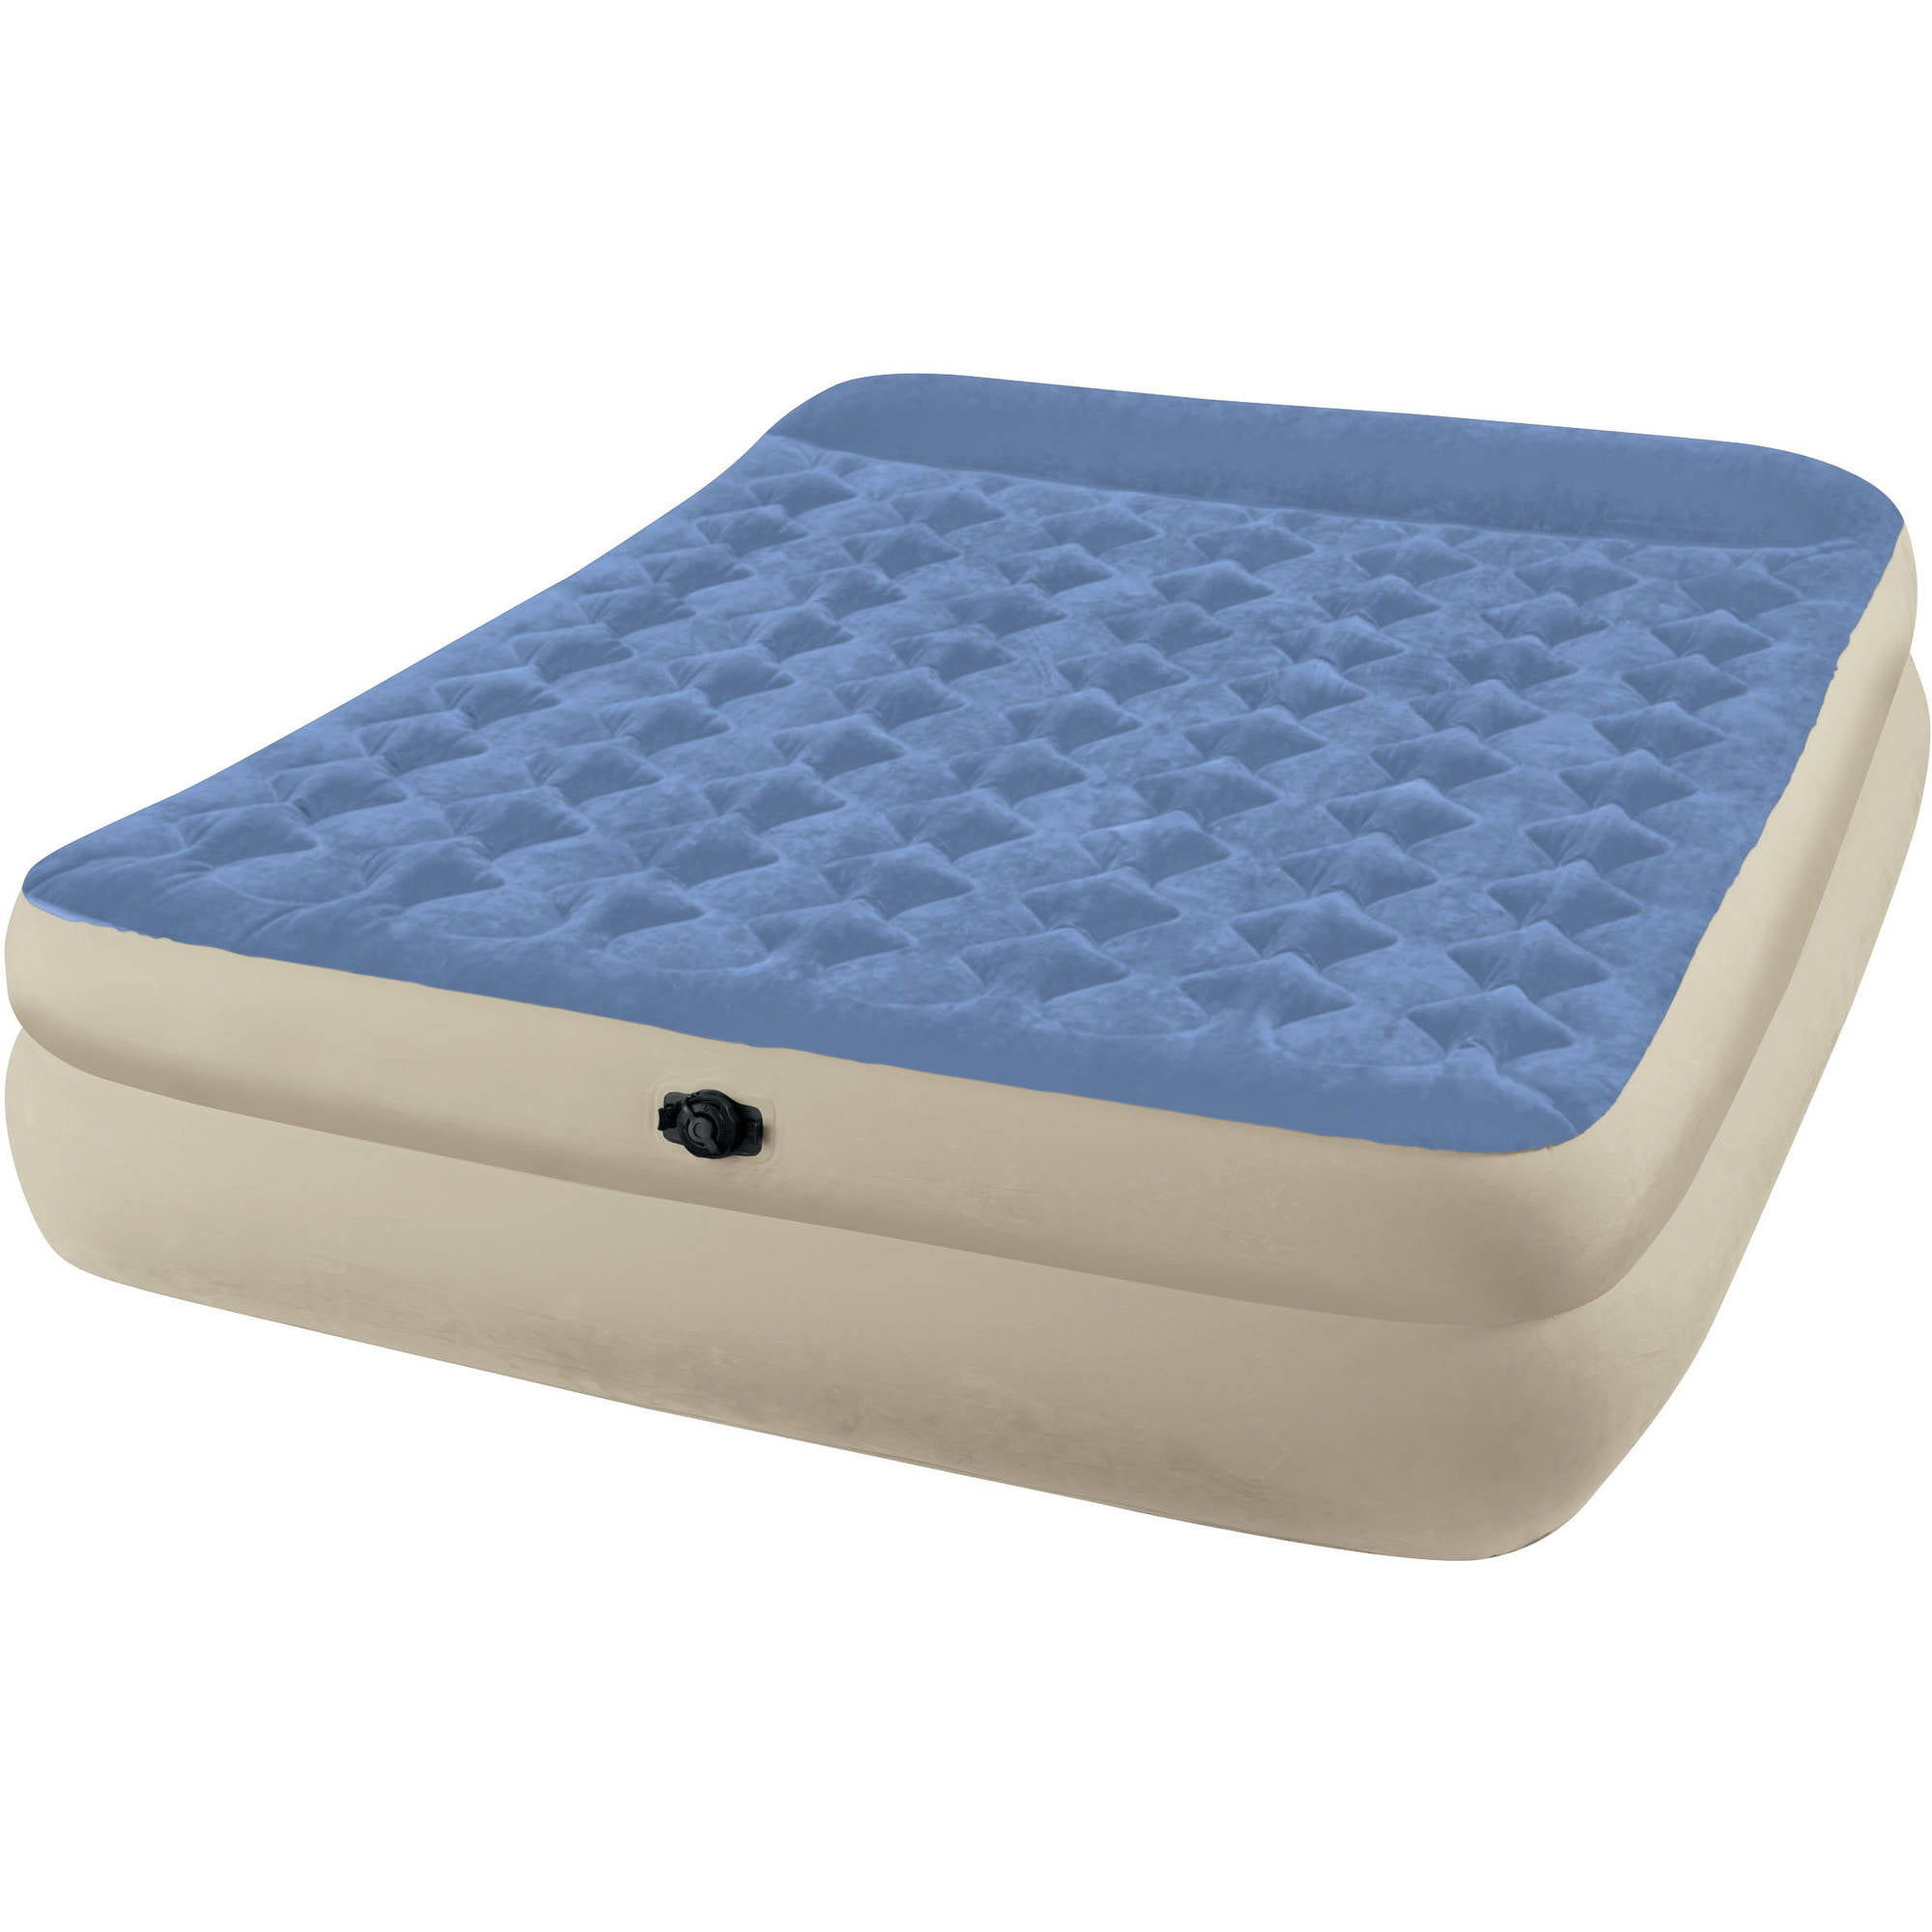 air camping mattresses mats s home bed inflatable pump single ra bestway bw beds sleeping itm